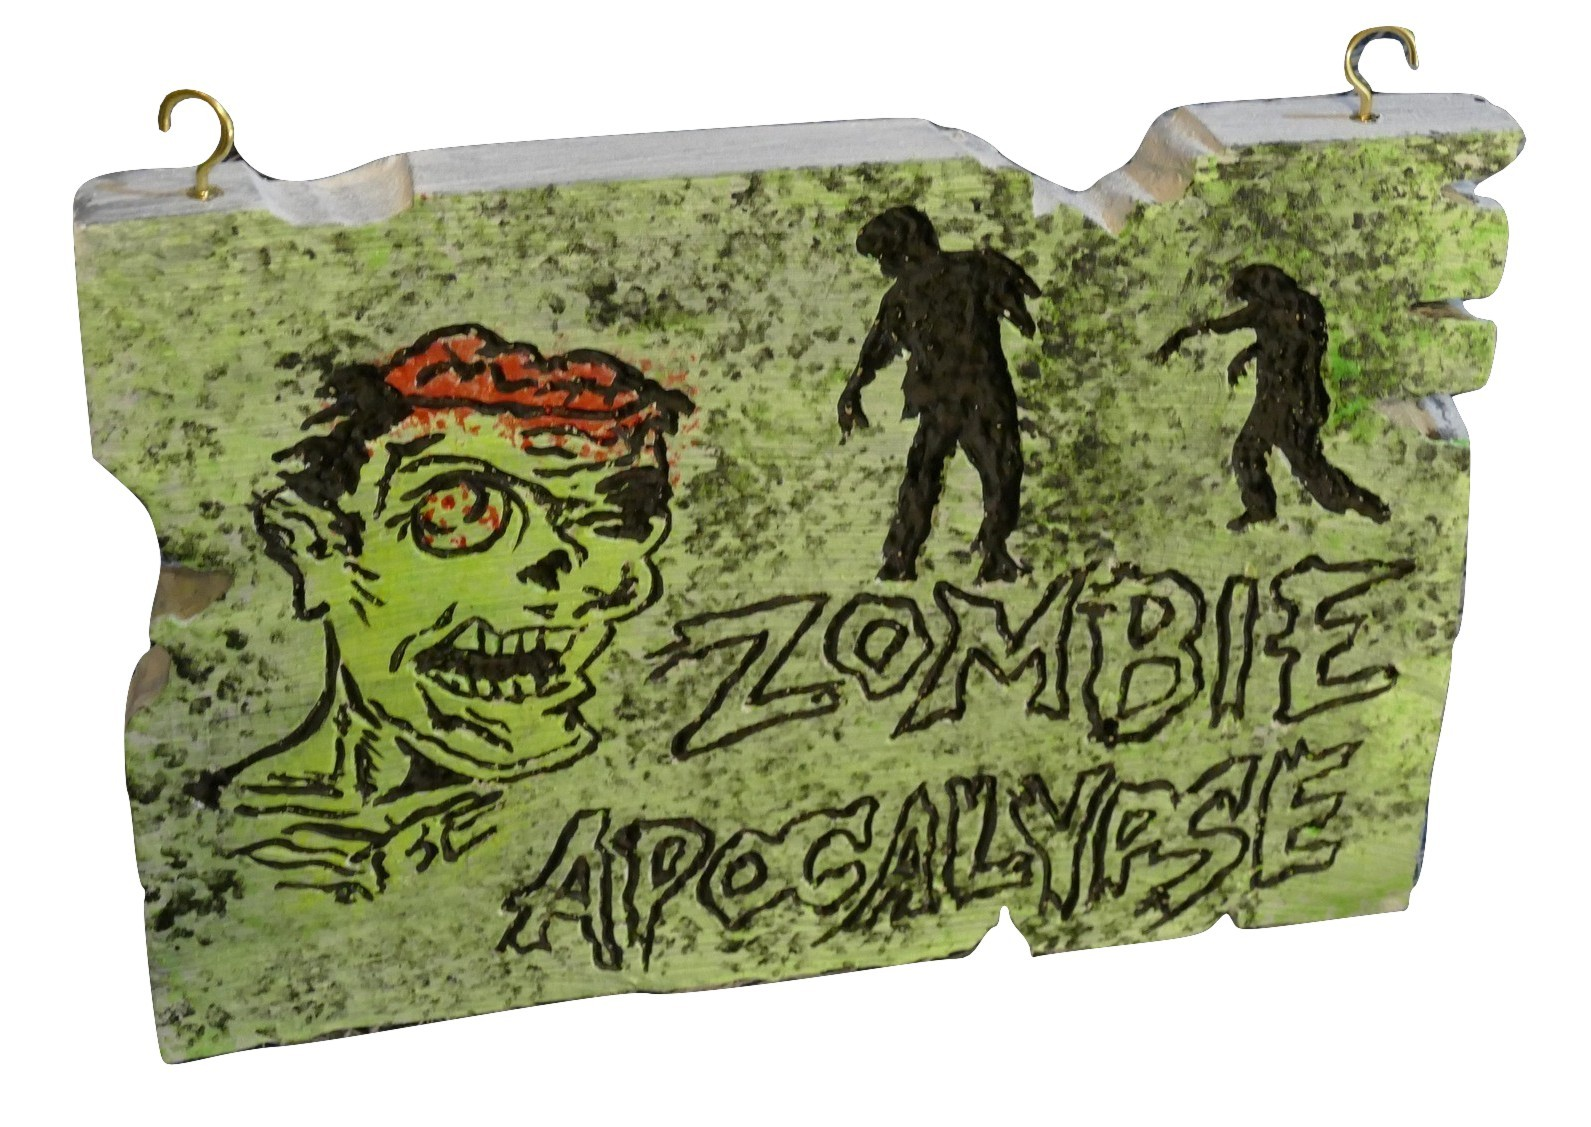 Zombie Apocalypse Sign Hand Carved Foam Halloween Decor. Decorative Towels For Bathroom Ideas. Laundry Room Cabinet Ideas. Wooden Letter Wall Decor. Pink And Gold Bedroom Decor. Cheap Dining Room Furniture Sets. Discount Dining Room Furniture. Cute Decor. How To Decorate A Living Room